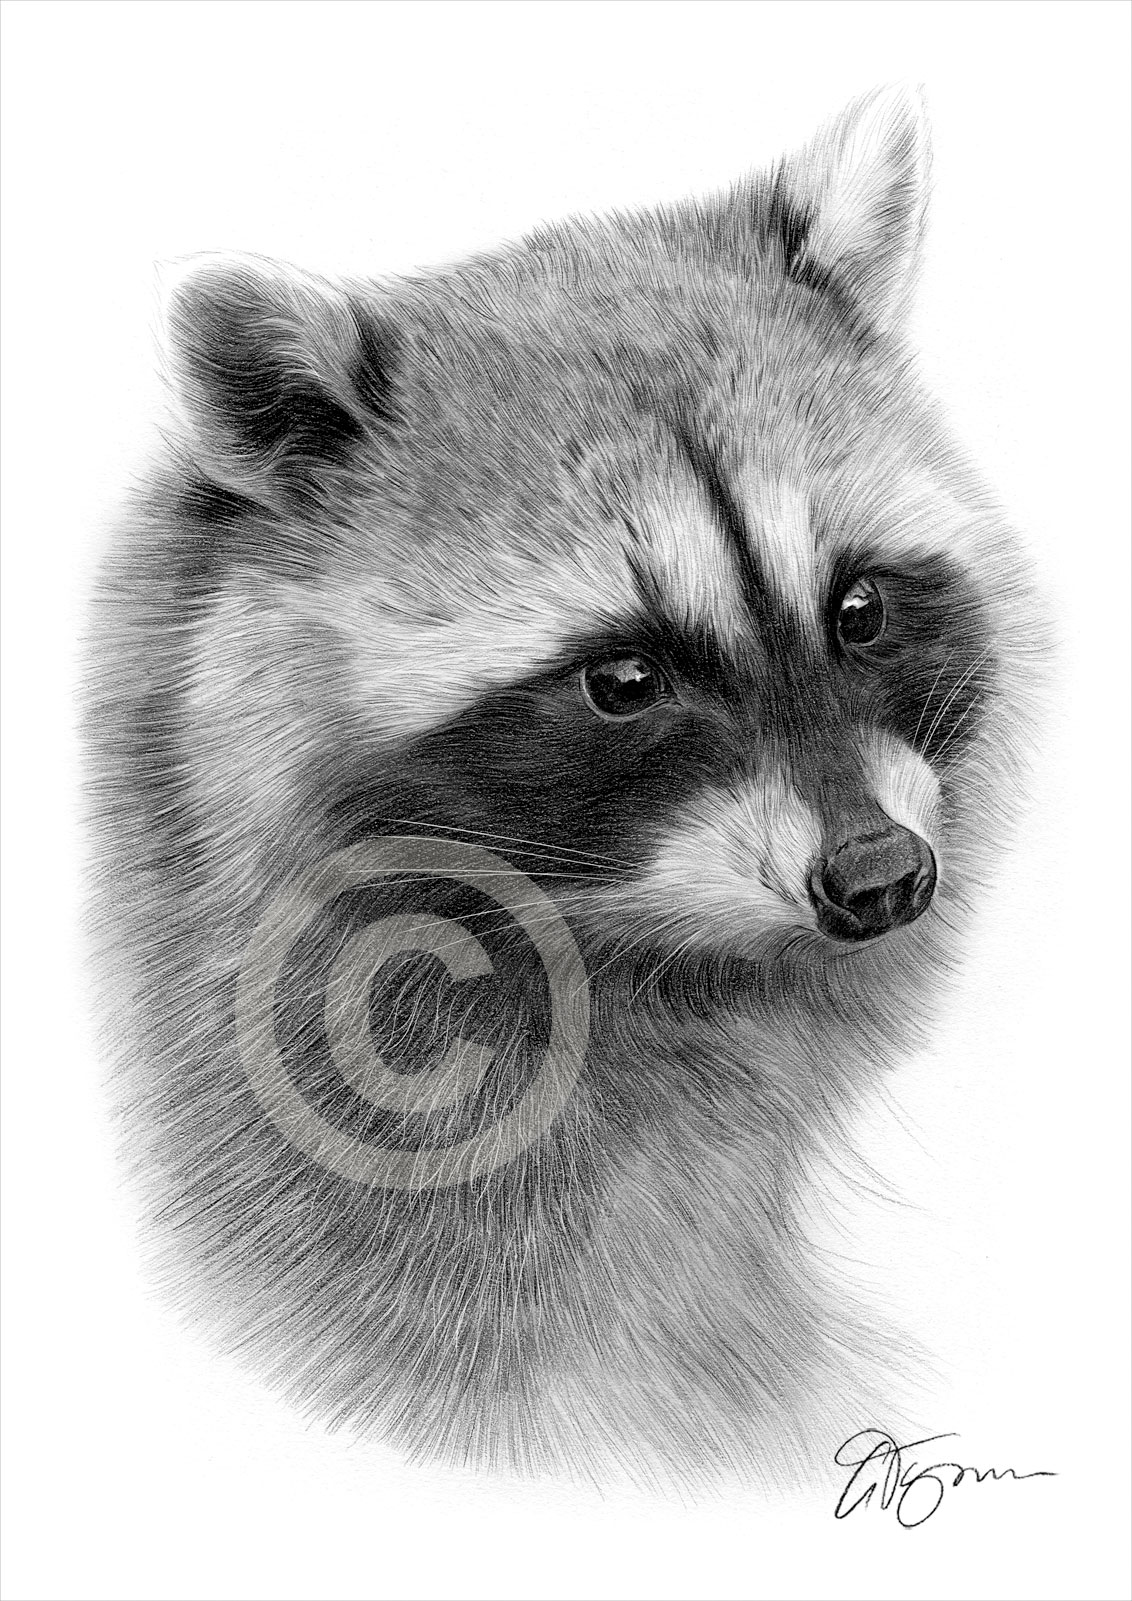 raccoon drawing baby raccoons drawing drawing by james schultz raccoon drawing